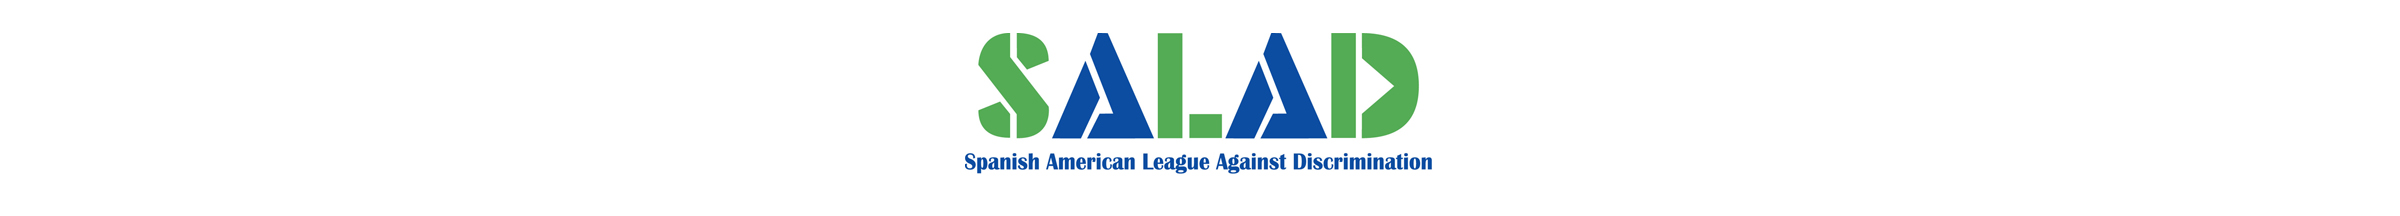 The Official Homepage of the Spanish American League Against Discrimination (S.A.L.A.D.)